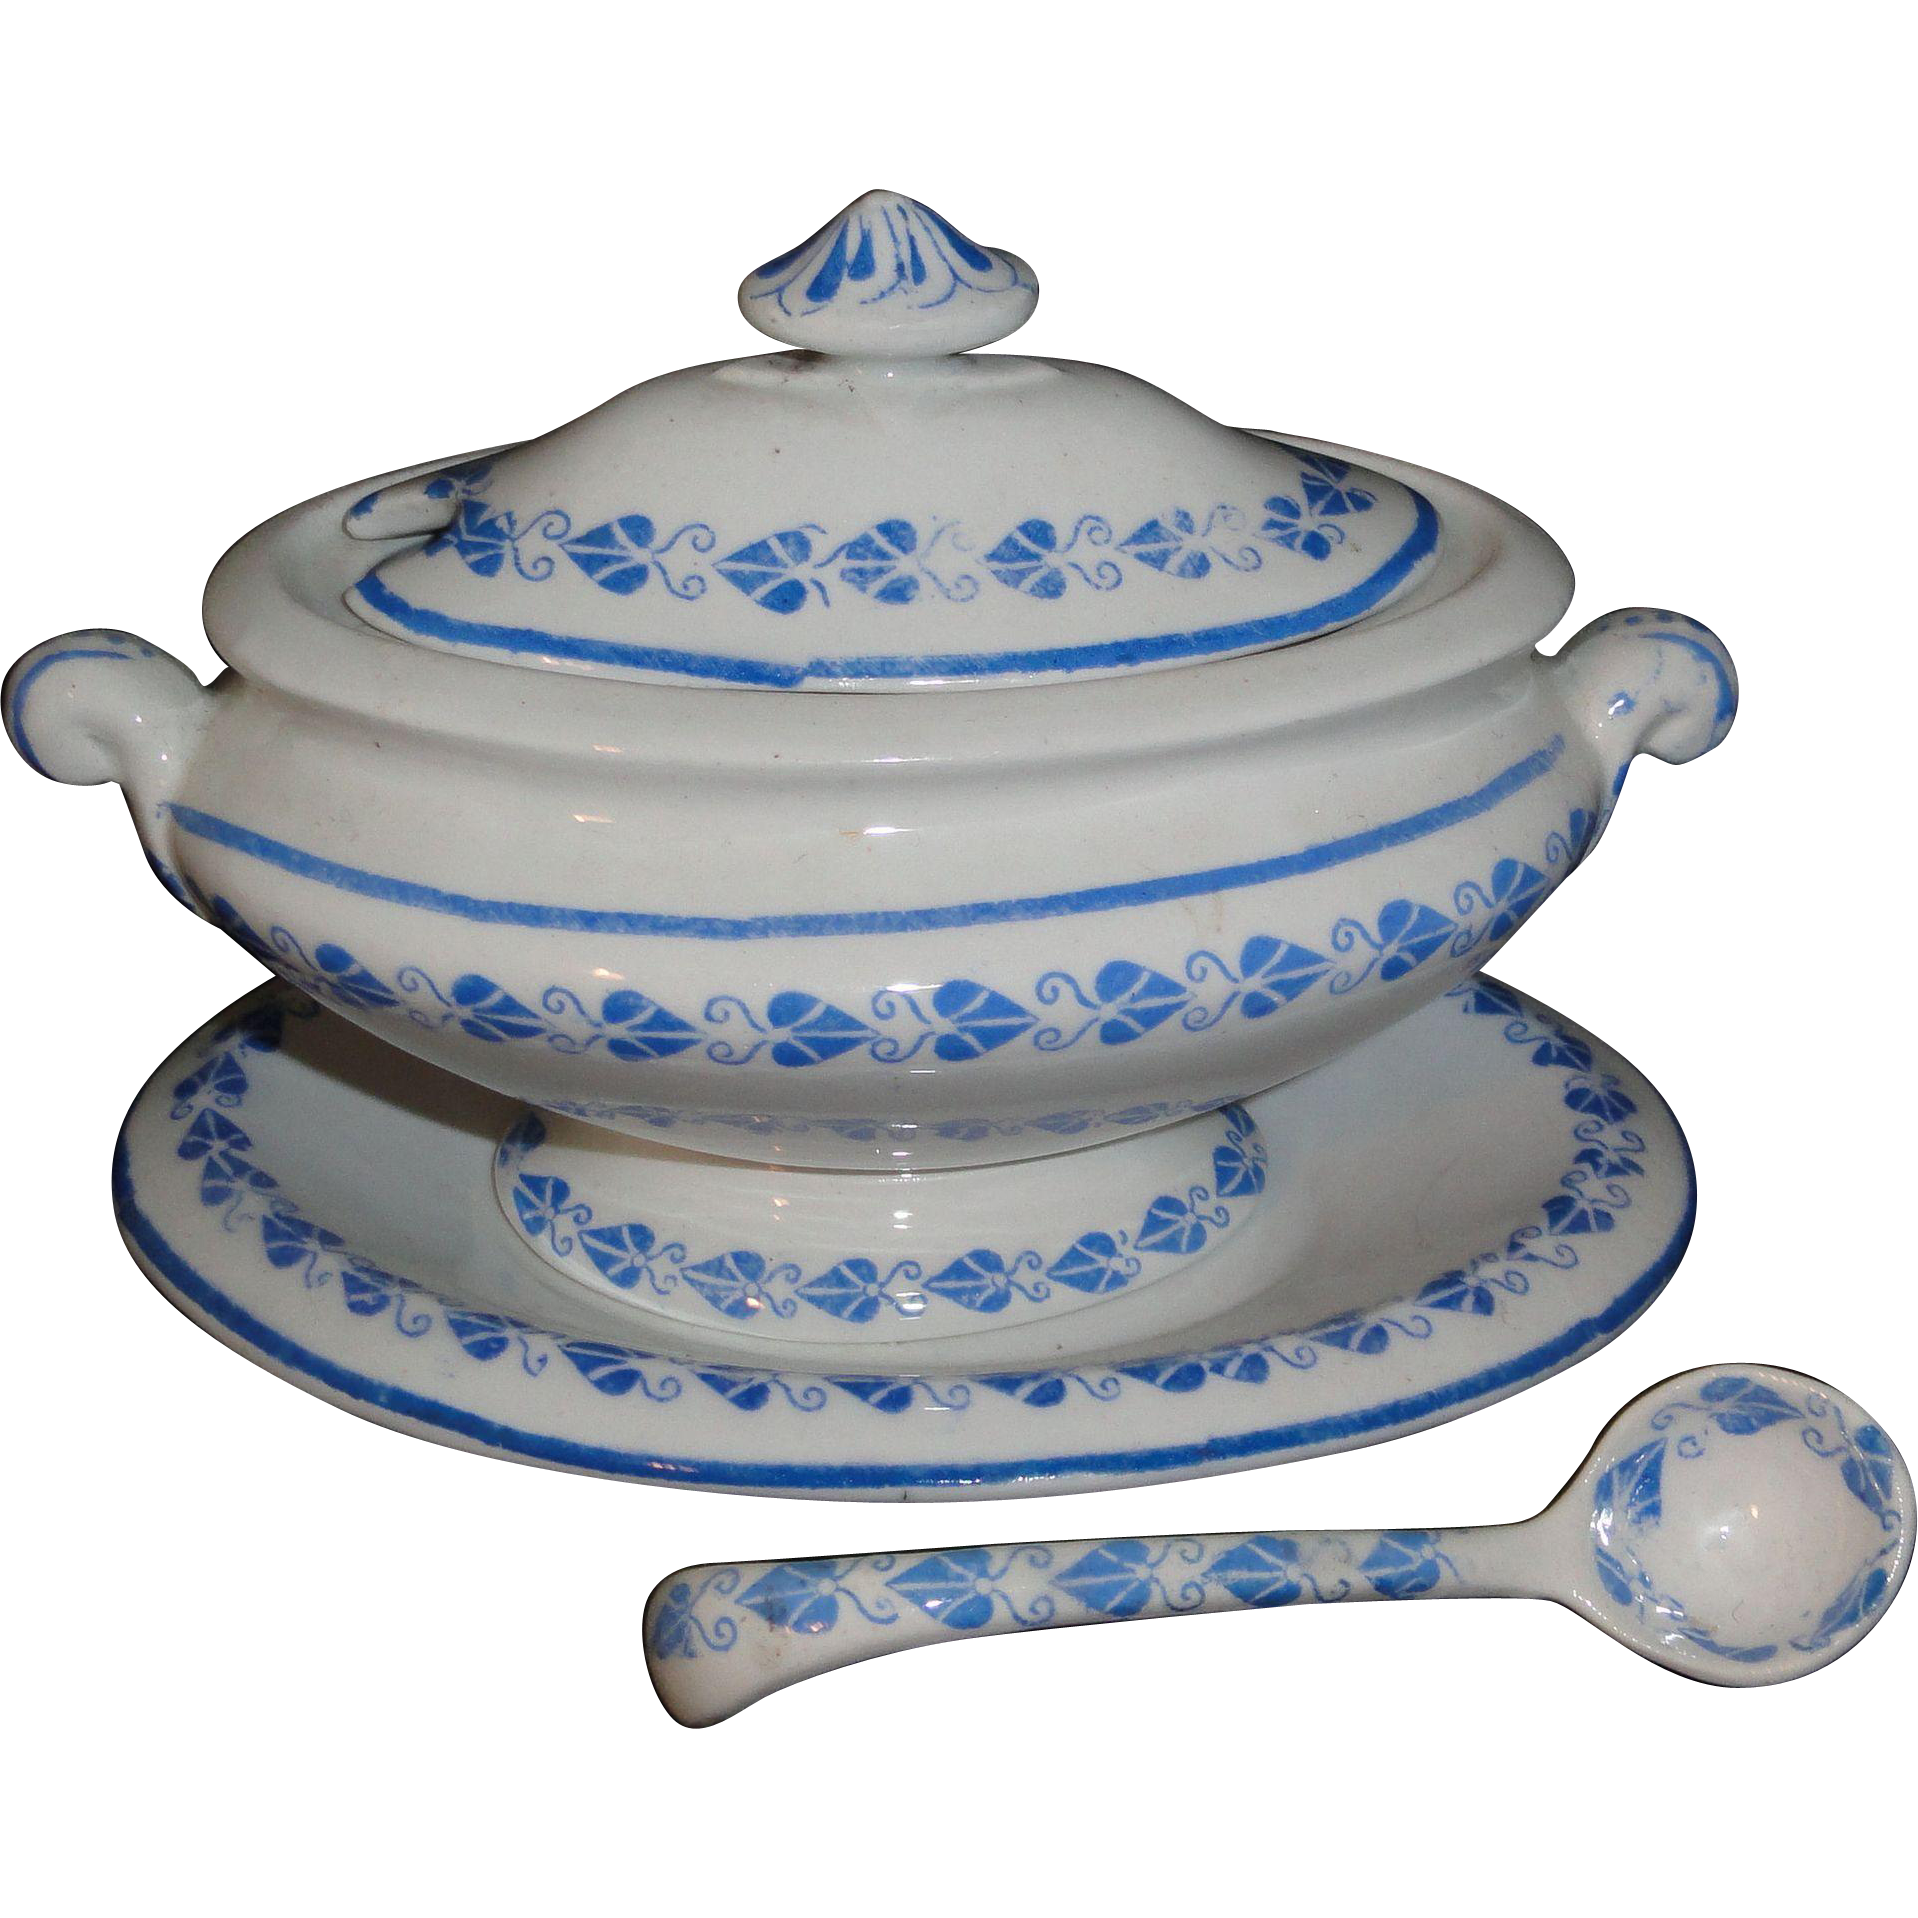 Copeland Childs Blue Hearts Soup Tureen with Ladle Staffordshire 1870 Transferware